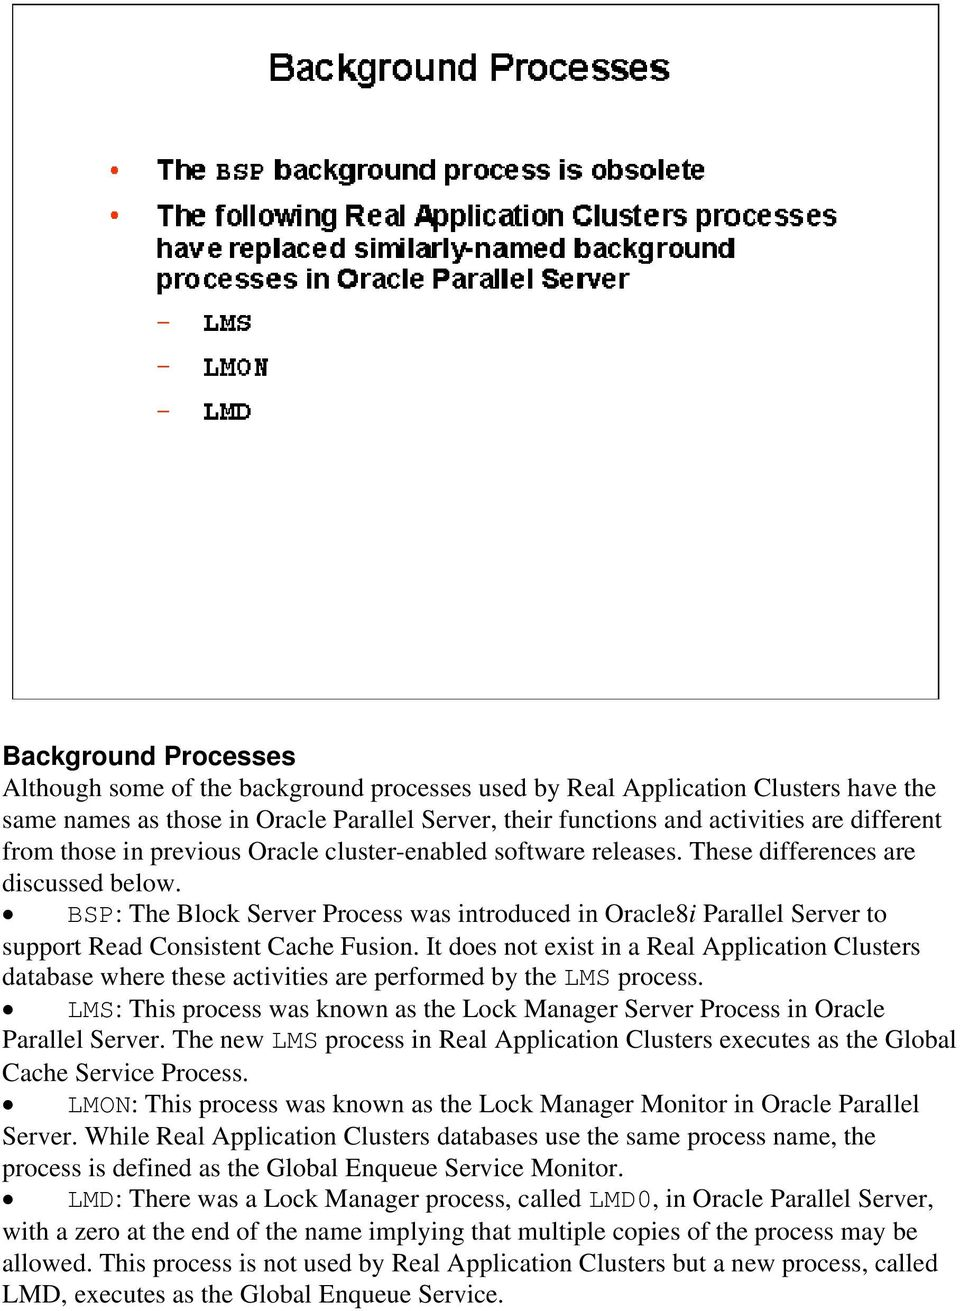 BSP: The Block Server Process was introduced in Oracle8i Parallel Server to support Read Consistent Cache Fusion.